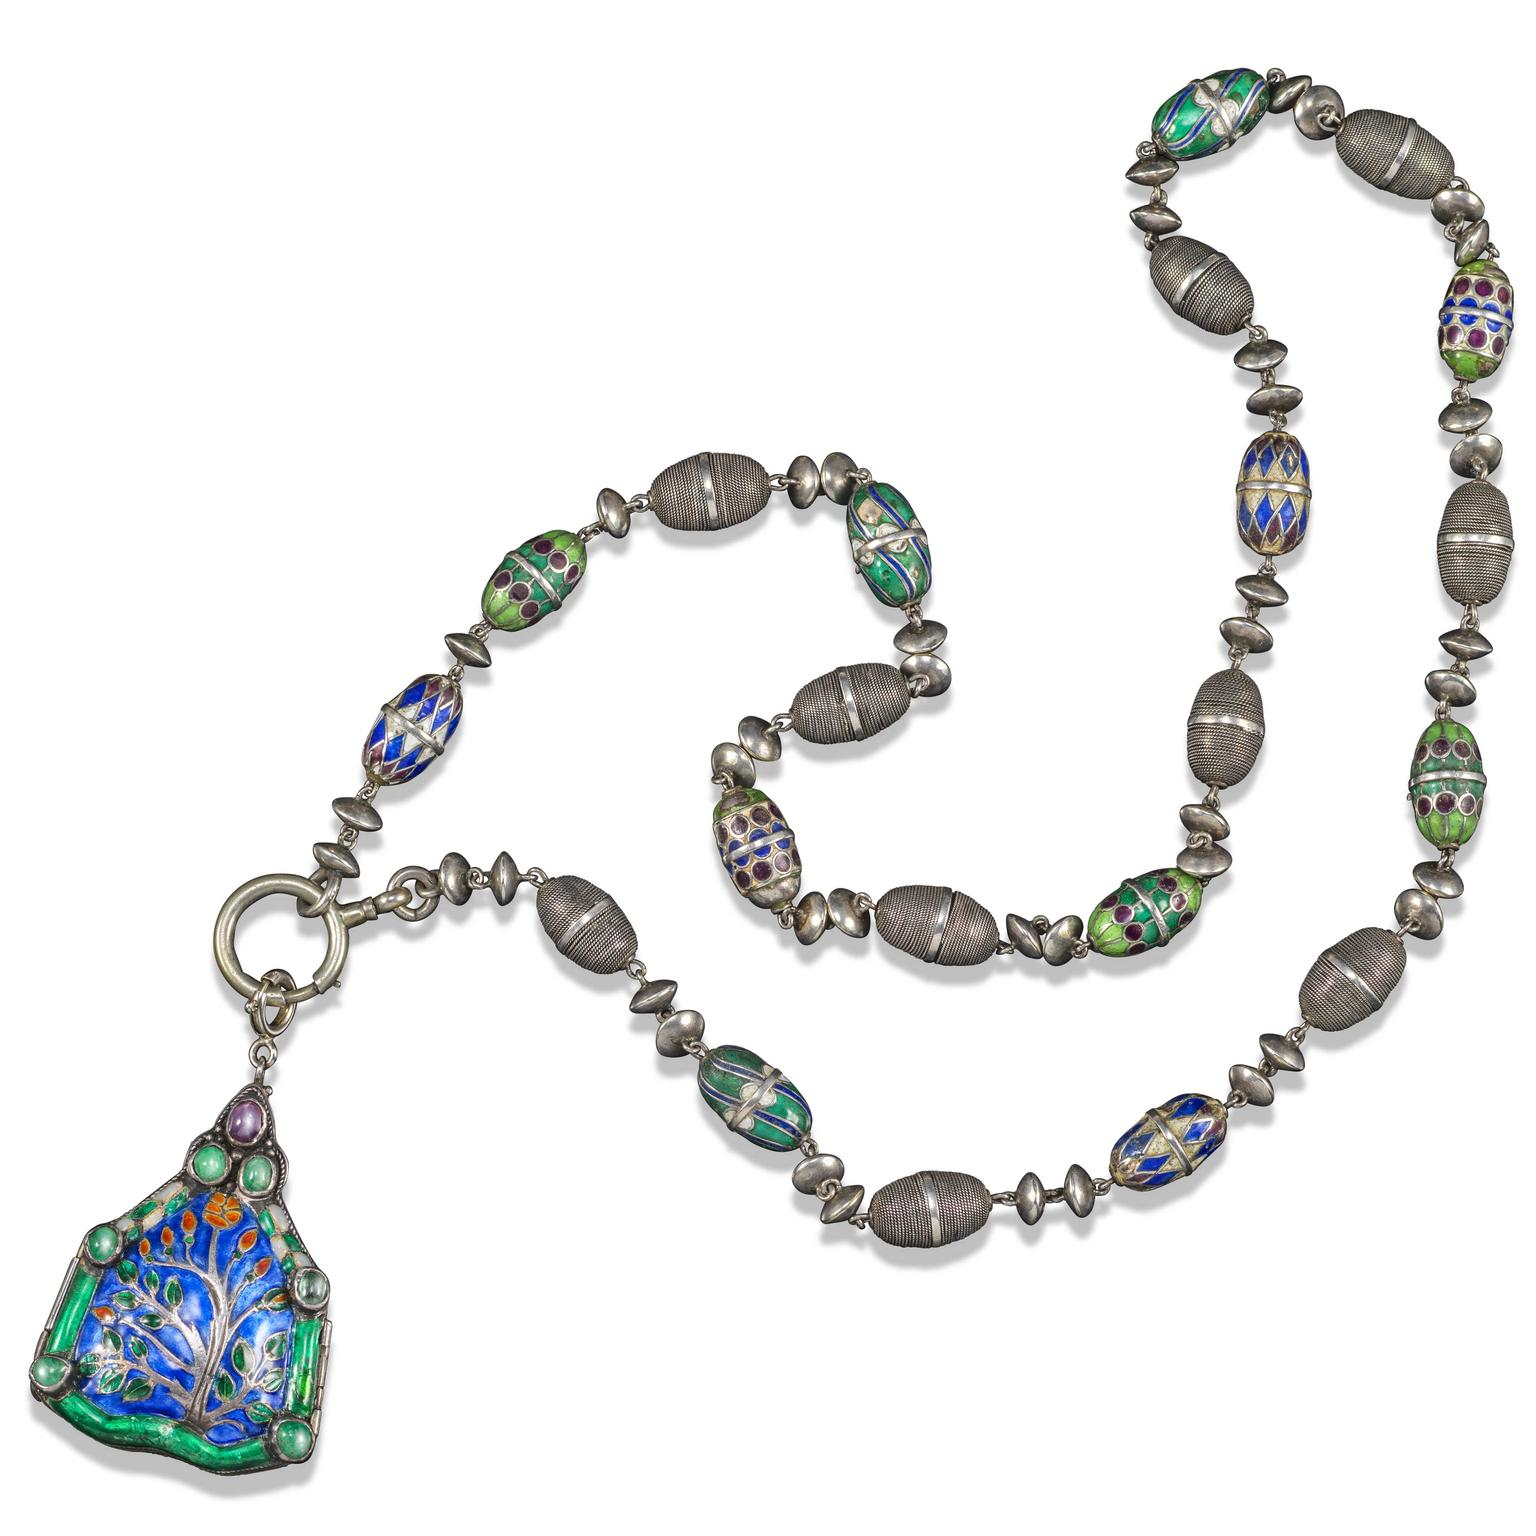 Lot 209 A silver and enamel necklace and pendant attributed to Henry Wilson. Estimate £1,000 - £1,500